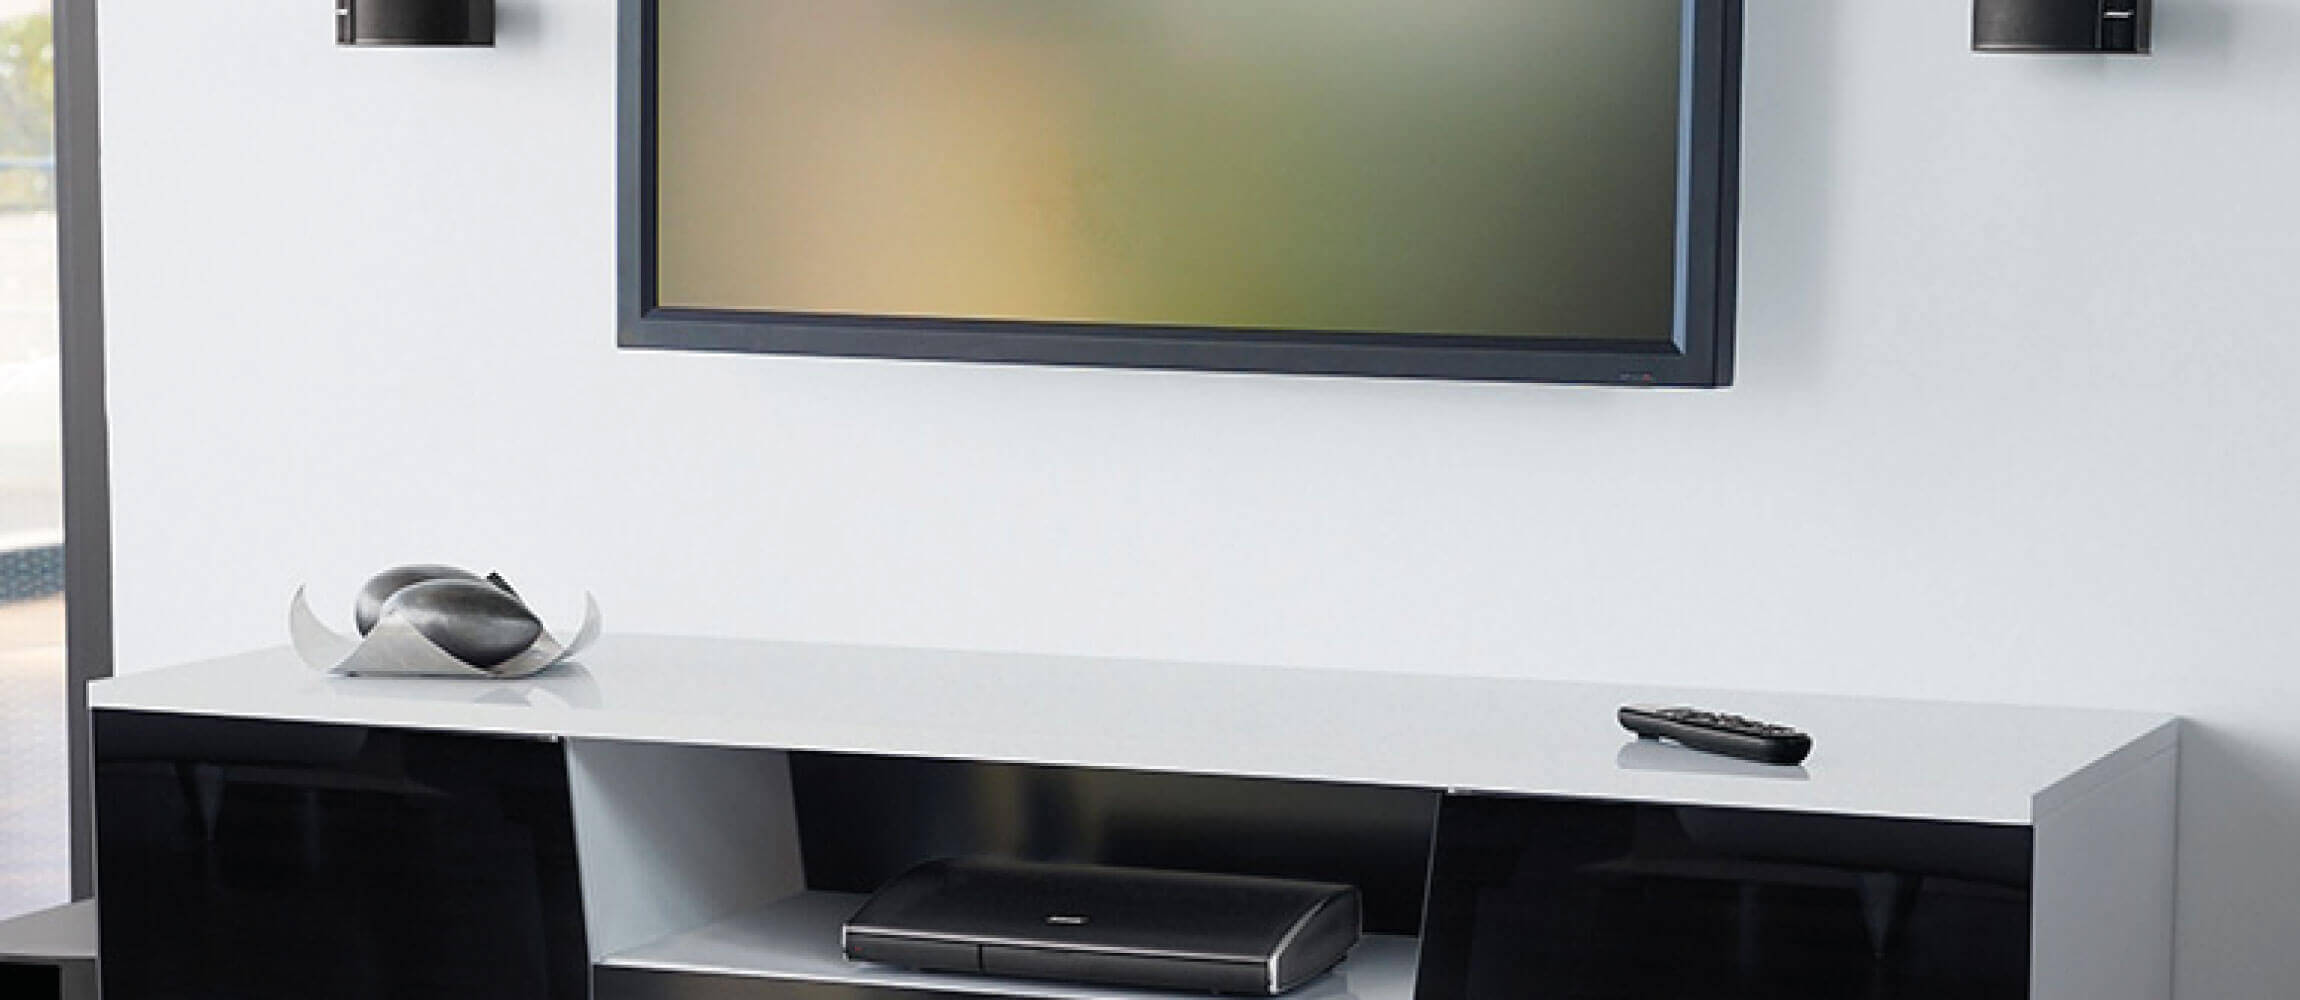 SoundTouch 235